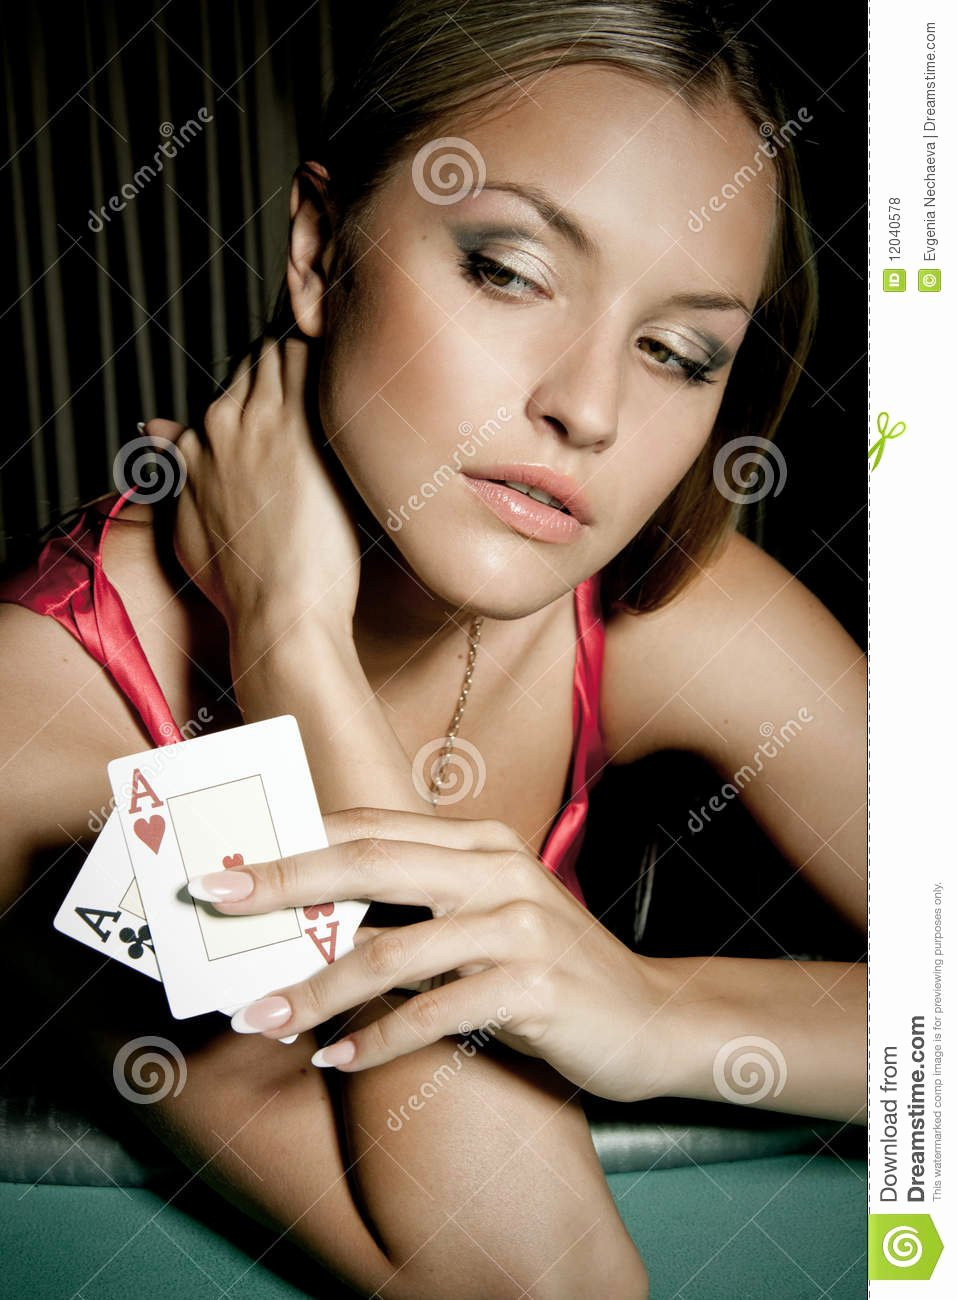 Free Sexy Women Photos Elegant Woman Playing Poker In Casino Stock Image Of Being